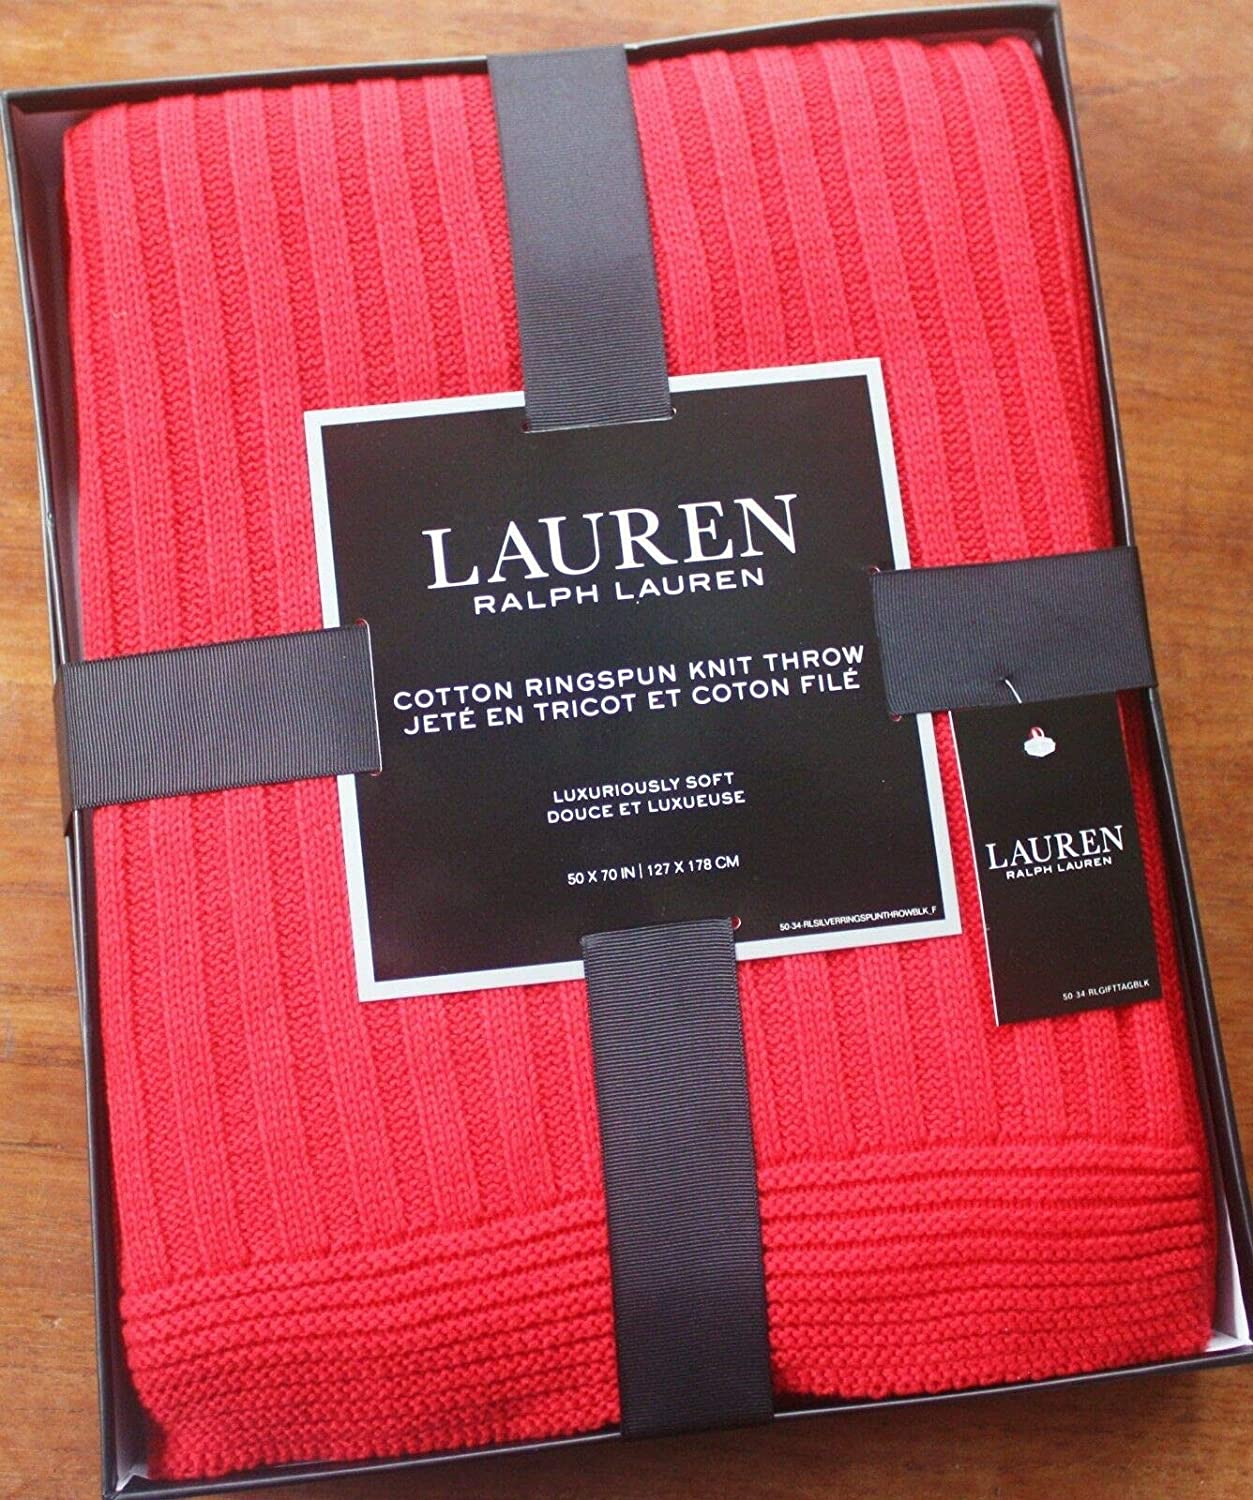 Lauren by Ralph Lauren Red Cotton Ringspun Sweater Knit Throw Blanket with Gift Box